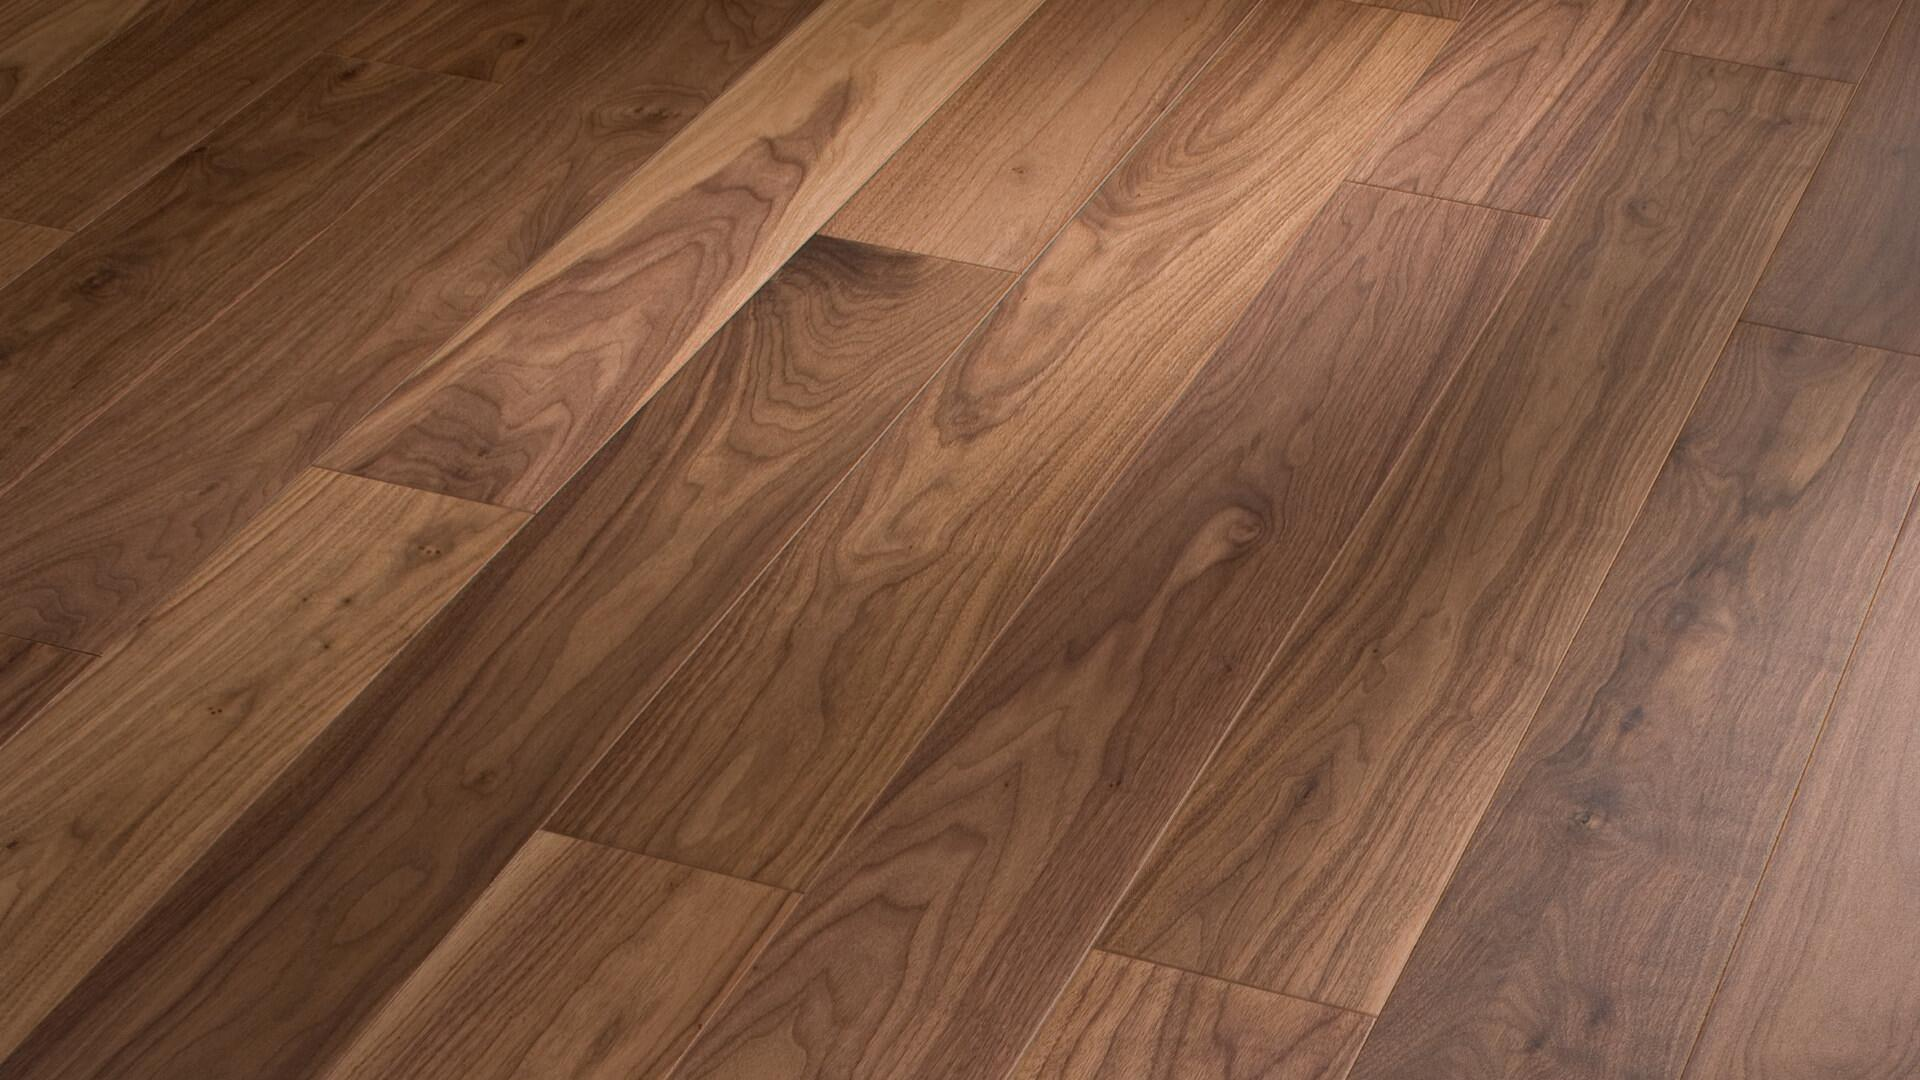 Parquet flooring MeisterParquet. longlife PS 300 American walnut lively 8044